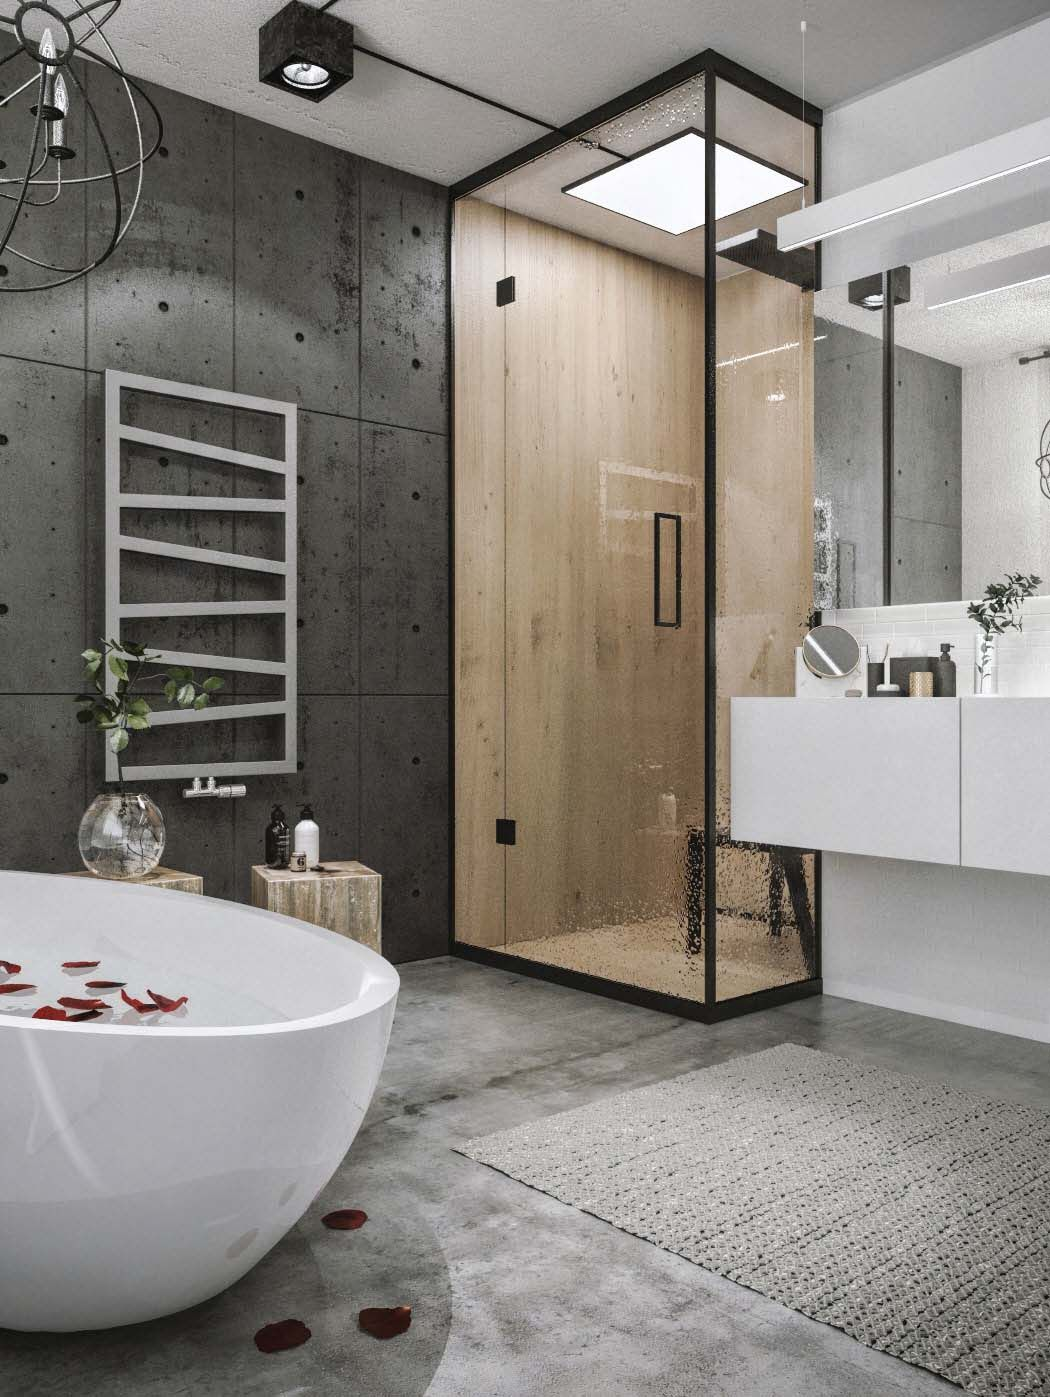 New Style Bathroom Designs Chic Industrial Loft In Lithuania Gets Modern Updates